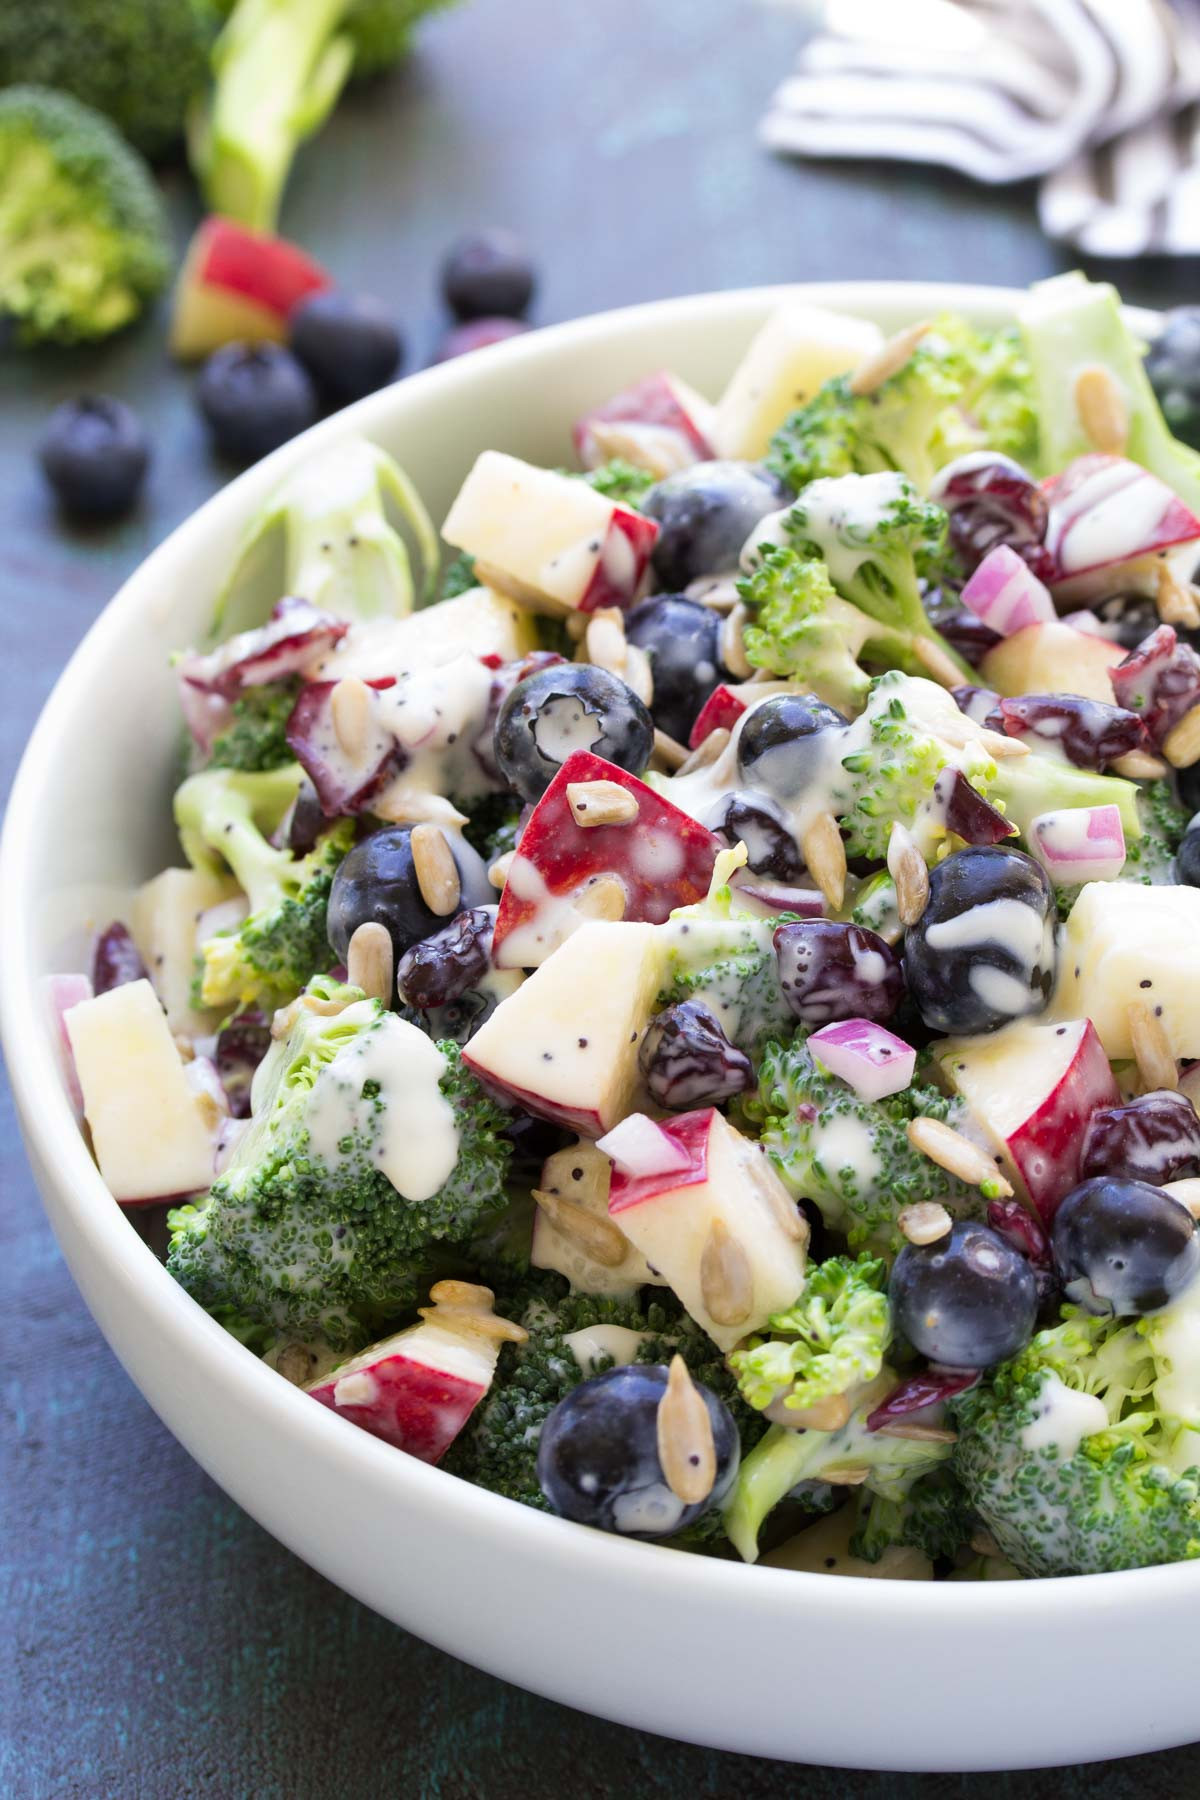 Healthy Side Salads  No Mayo Broccoli Salad with Blueberries and Apple Recipe